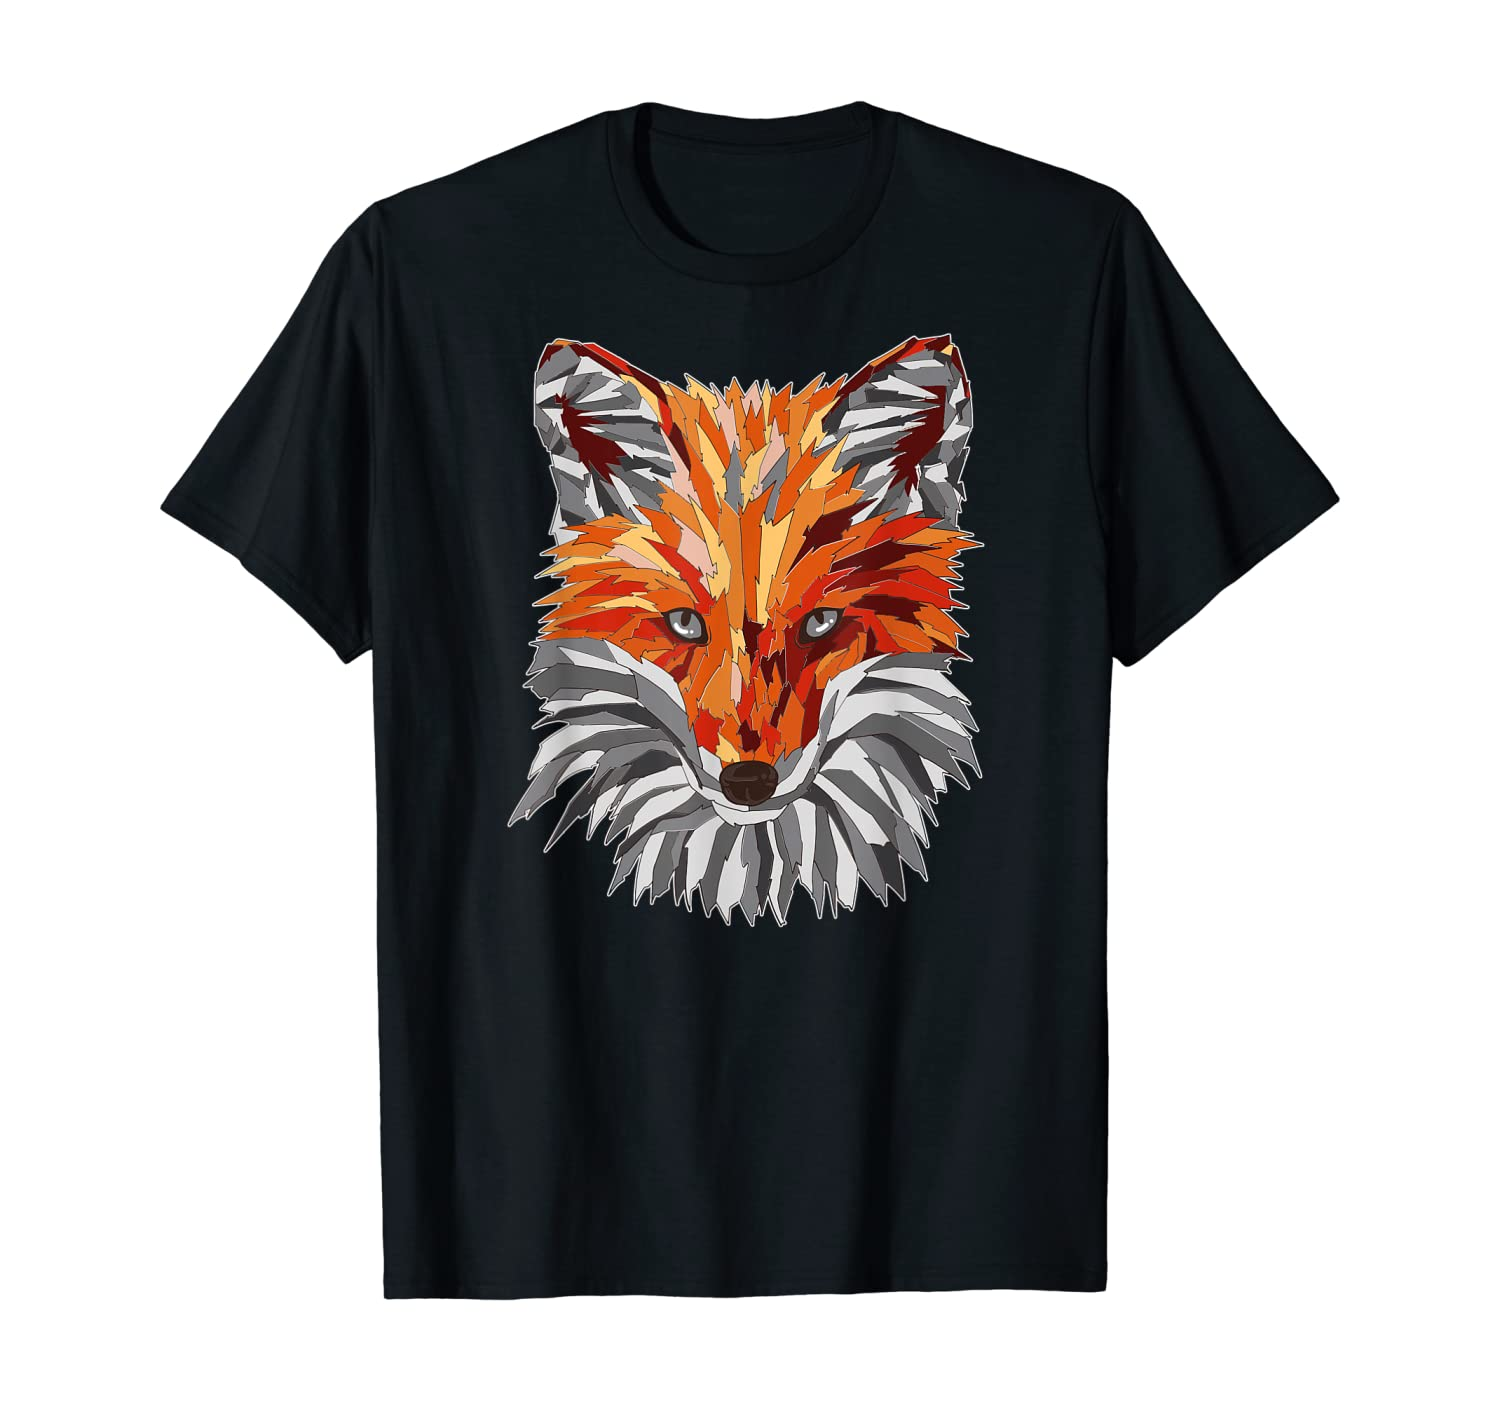 Fox in nature for hunter or forester and camping gift T-Shirt